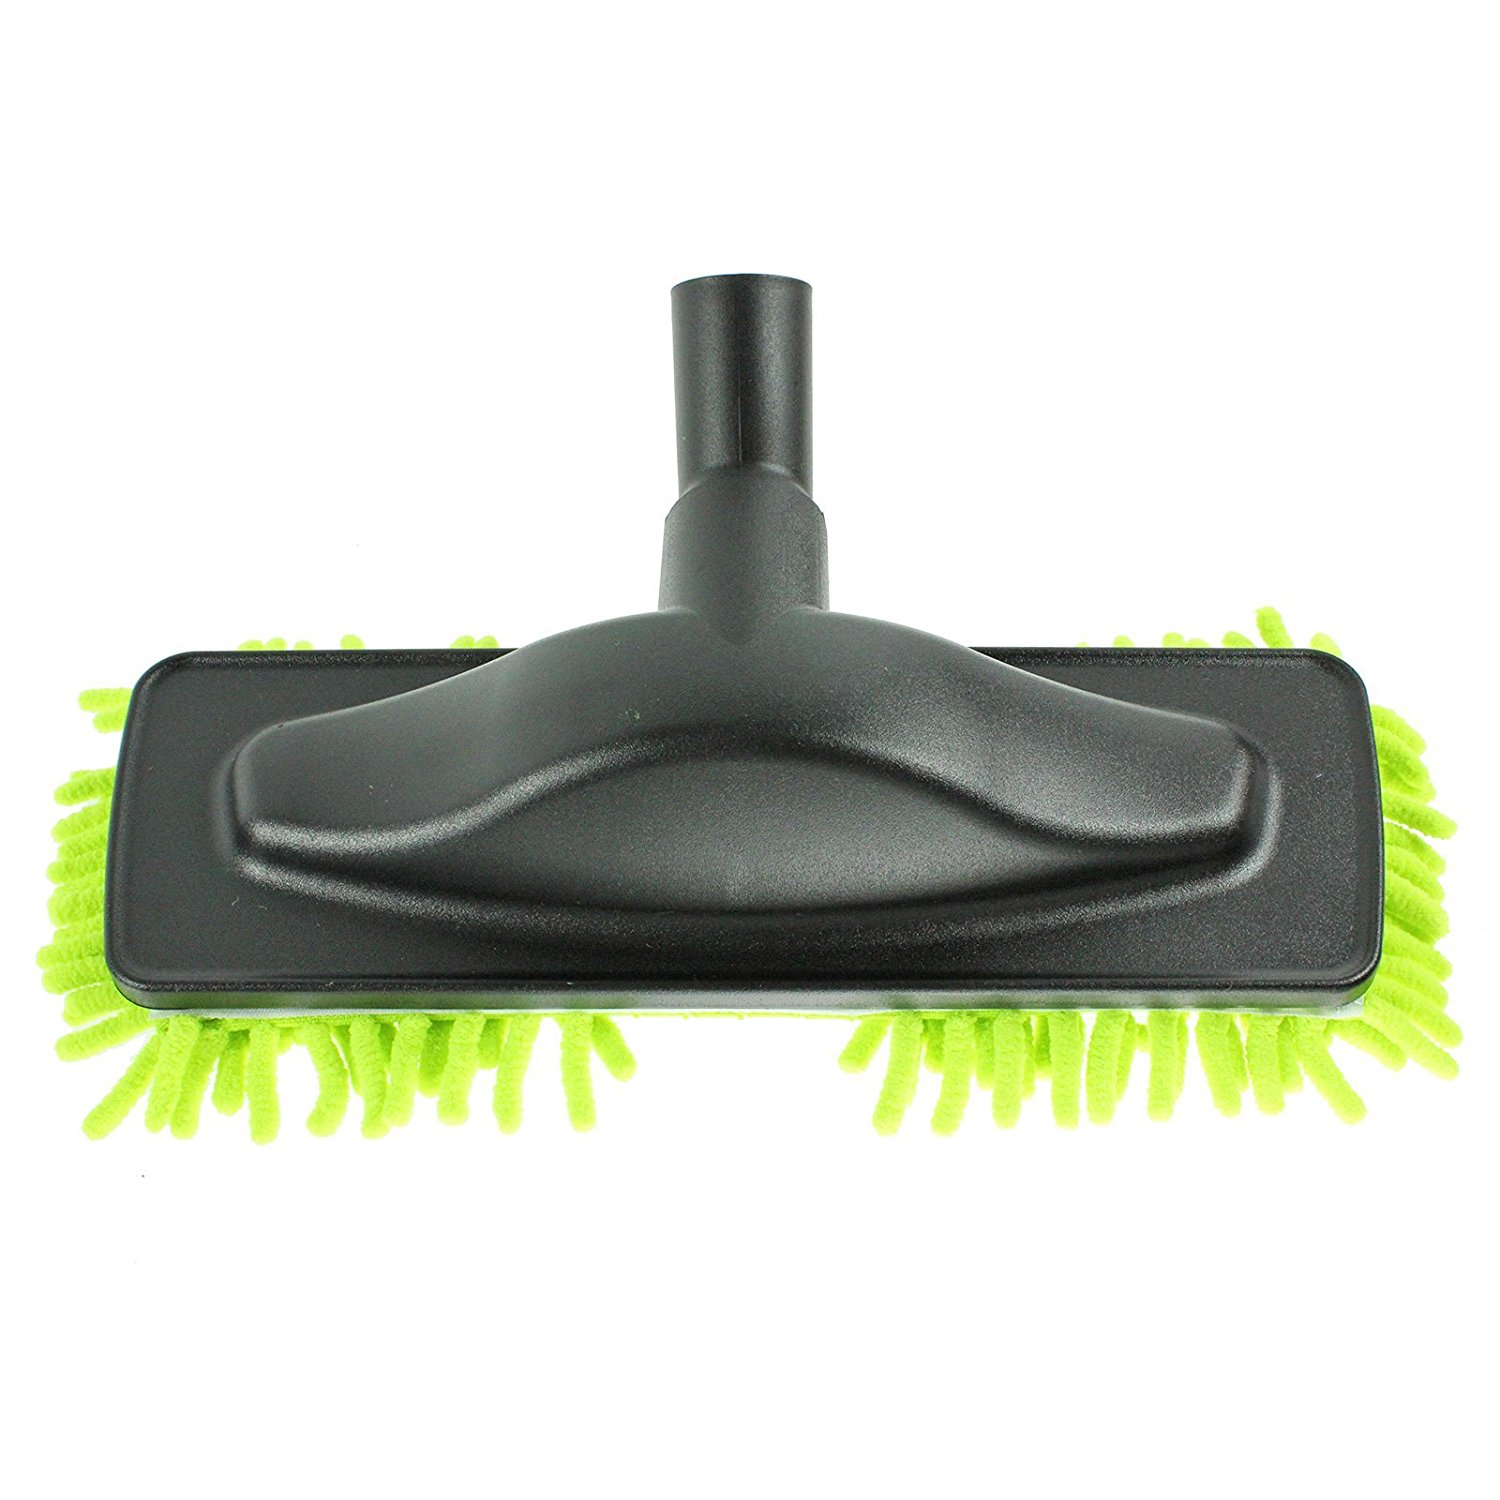 First4spares Hard Floor Washable Sweeper Brush Head For Bissell Vacuum Cleaners (35mm)